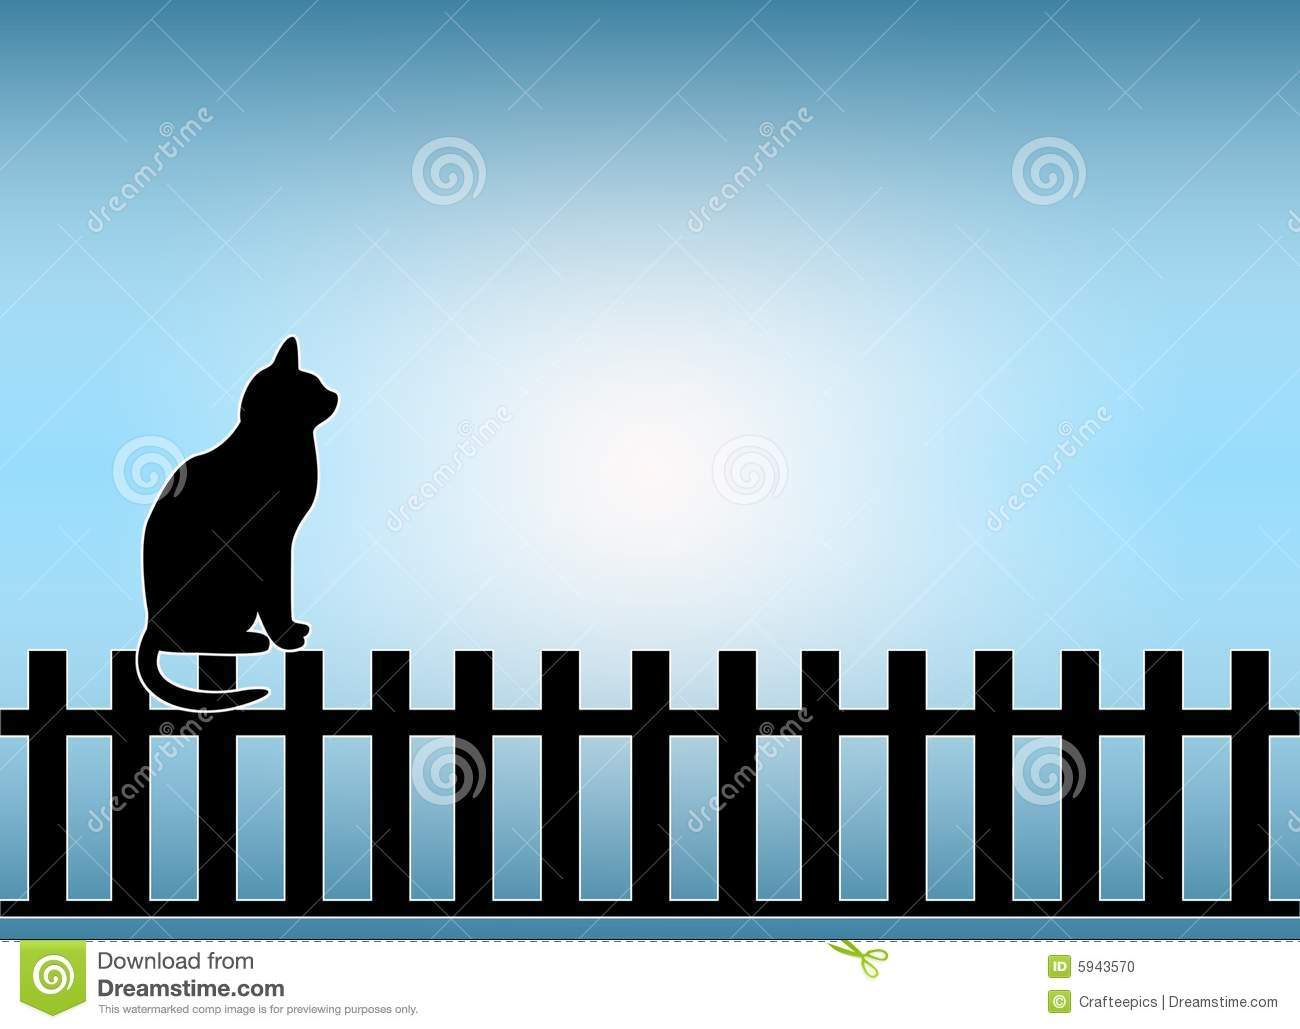 Black Animal Print Wallpaper Cat On Fence Stock Illustration Illustration Of Fence